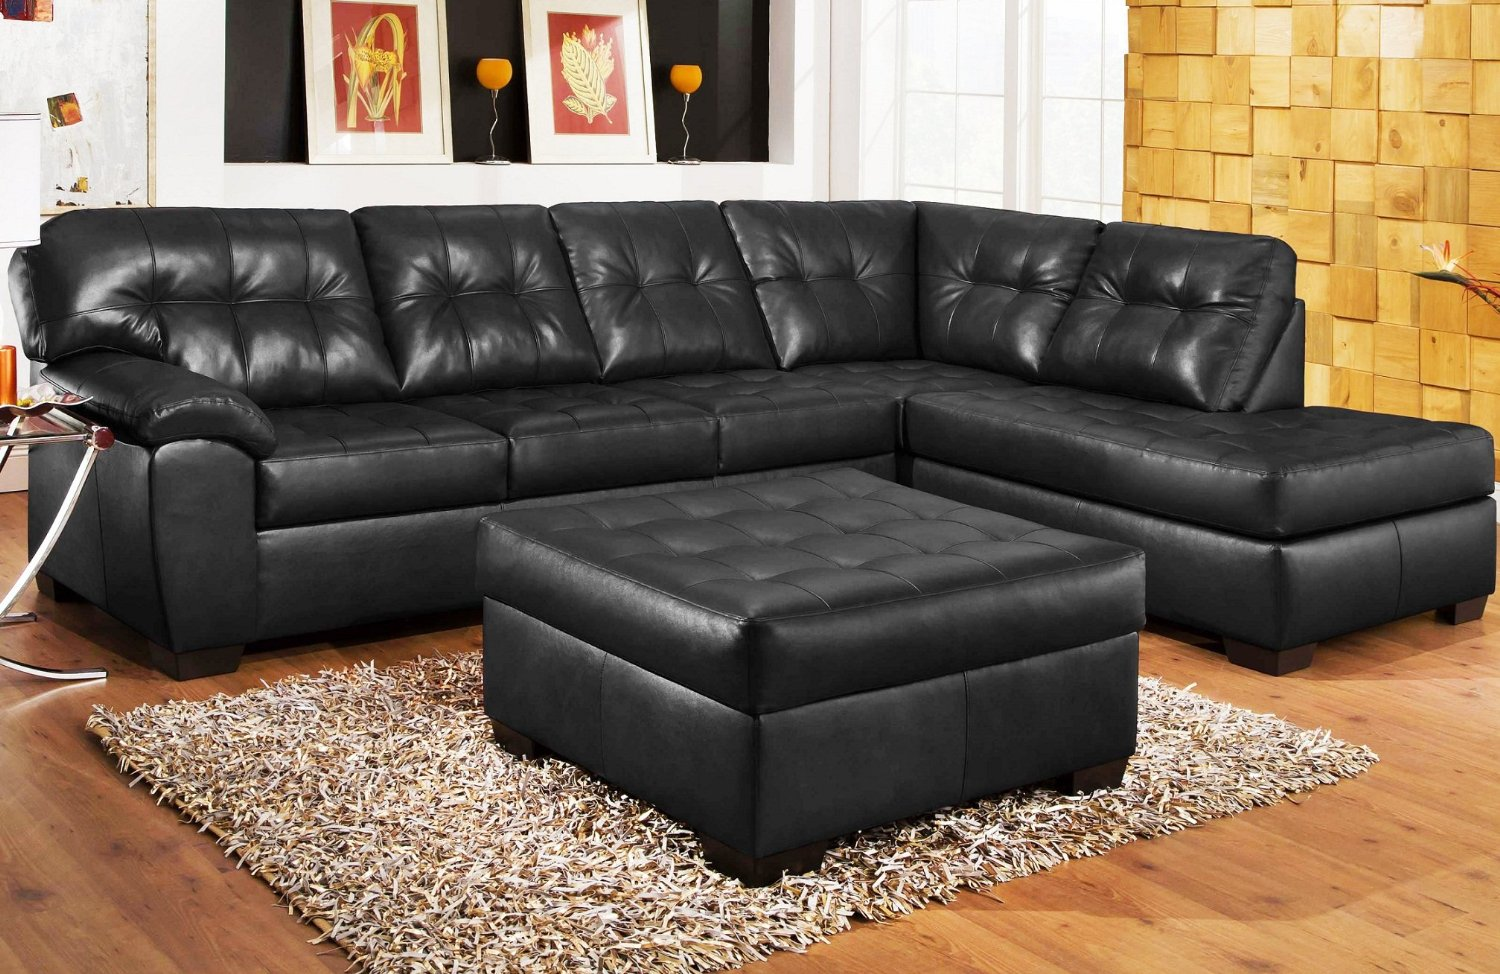 Luxurious Black Leather Sectional Sofa With Single Chaise Black Leather  Ottoman Furniture Wool Area Rug Wooden